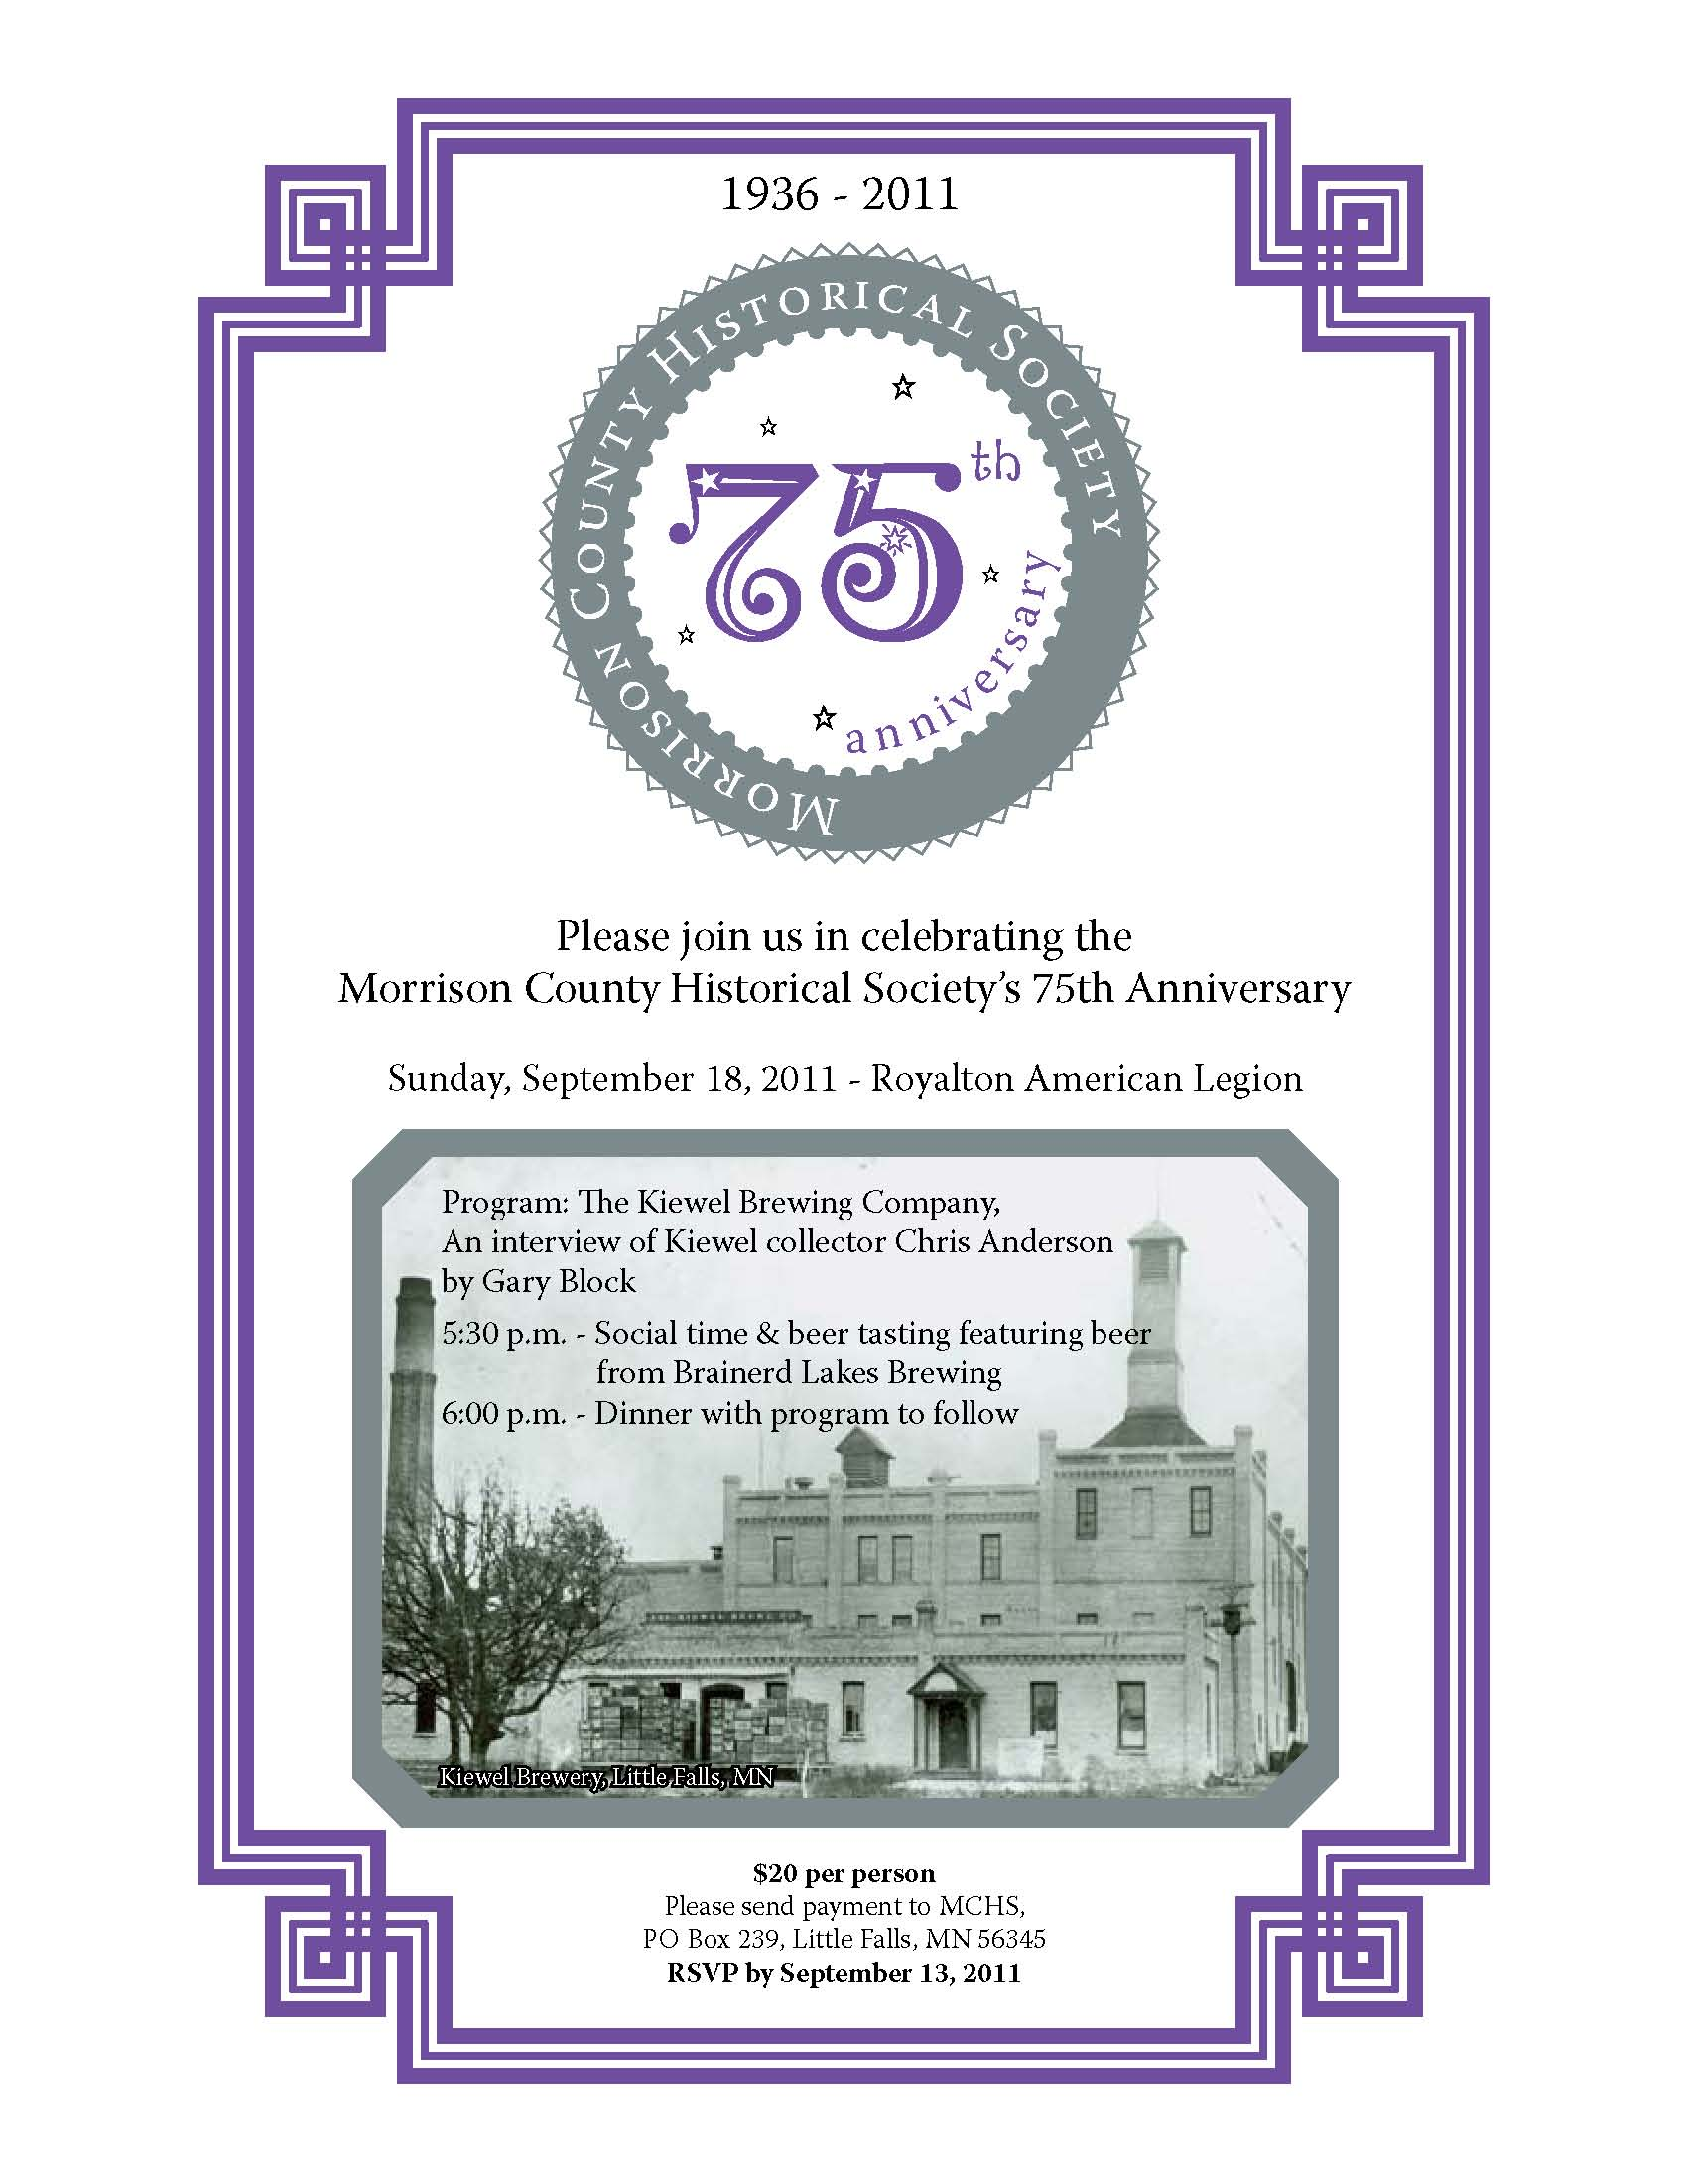 75th Anniversary Dinner of MCHS to feature Kiewel Brewing Company history, September 18, 2011.